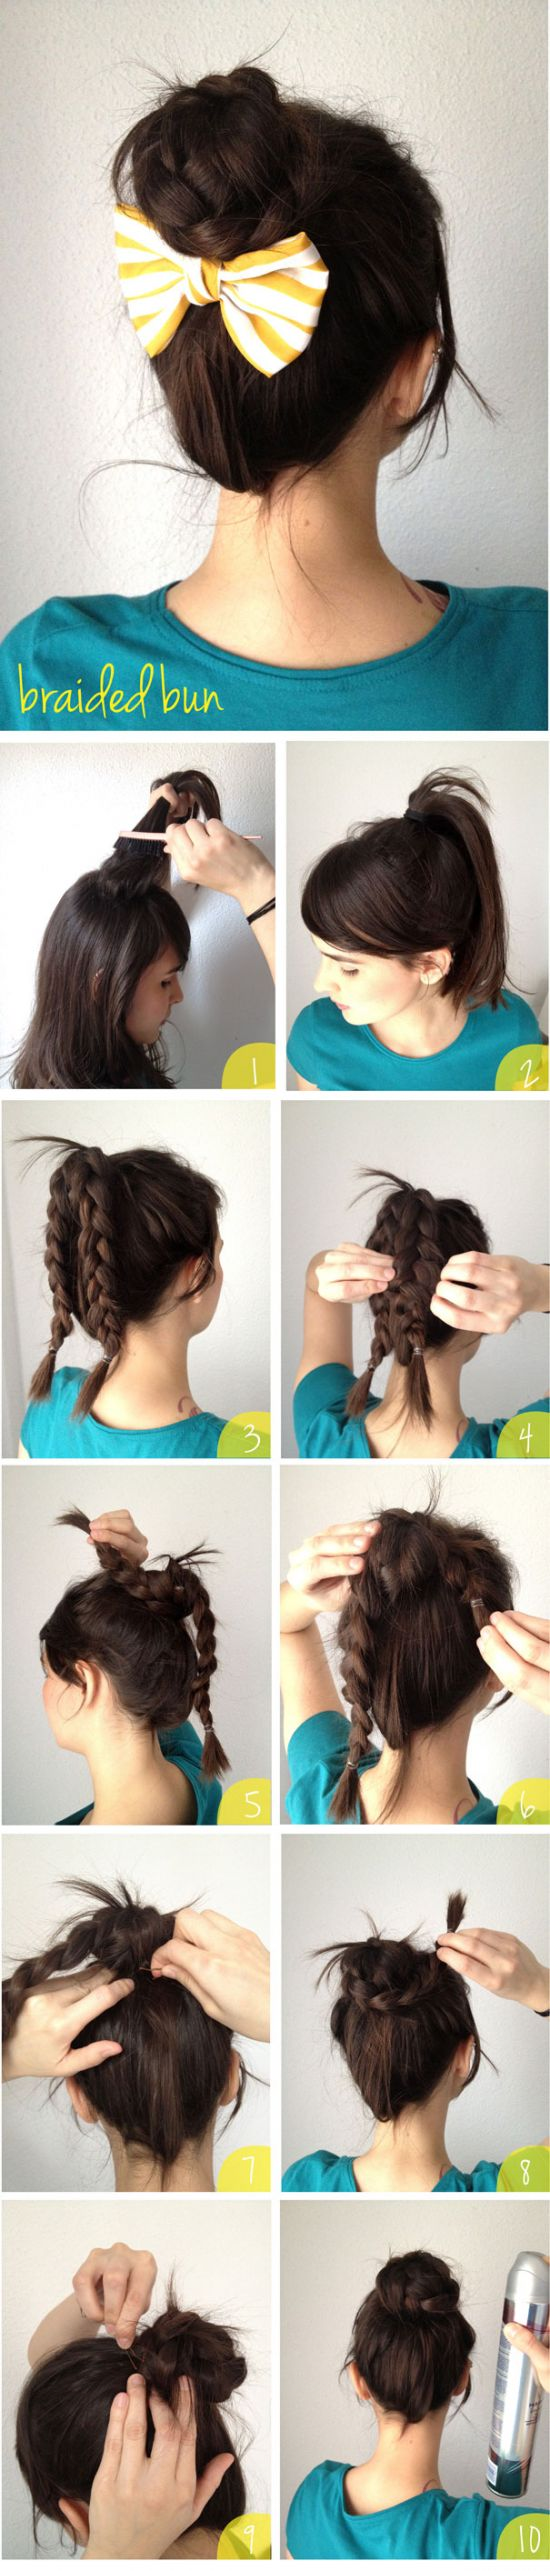 best hair images on pinterest long hair hair makeup and make up